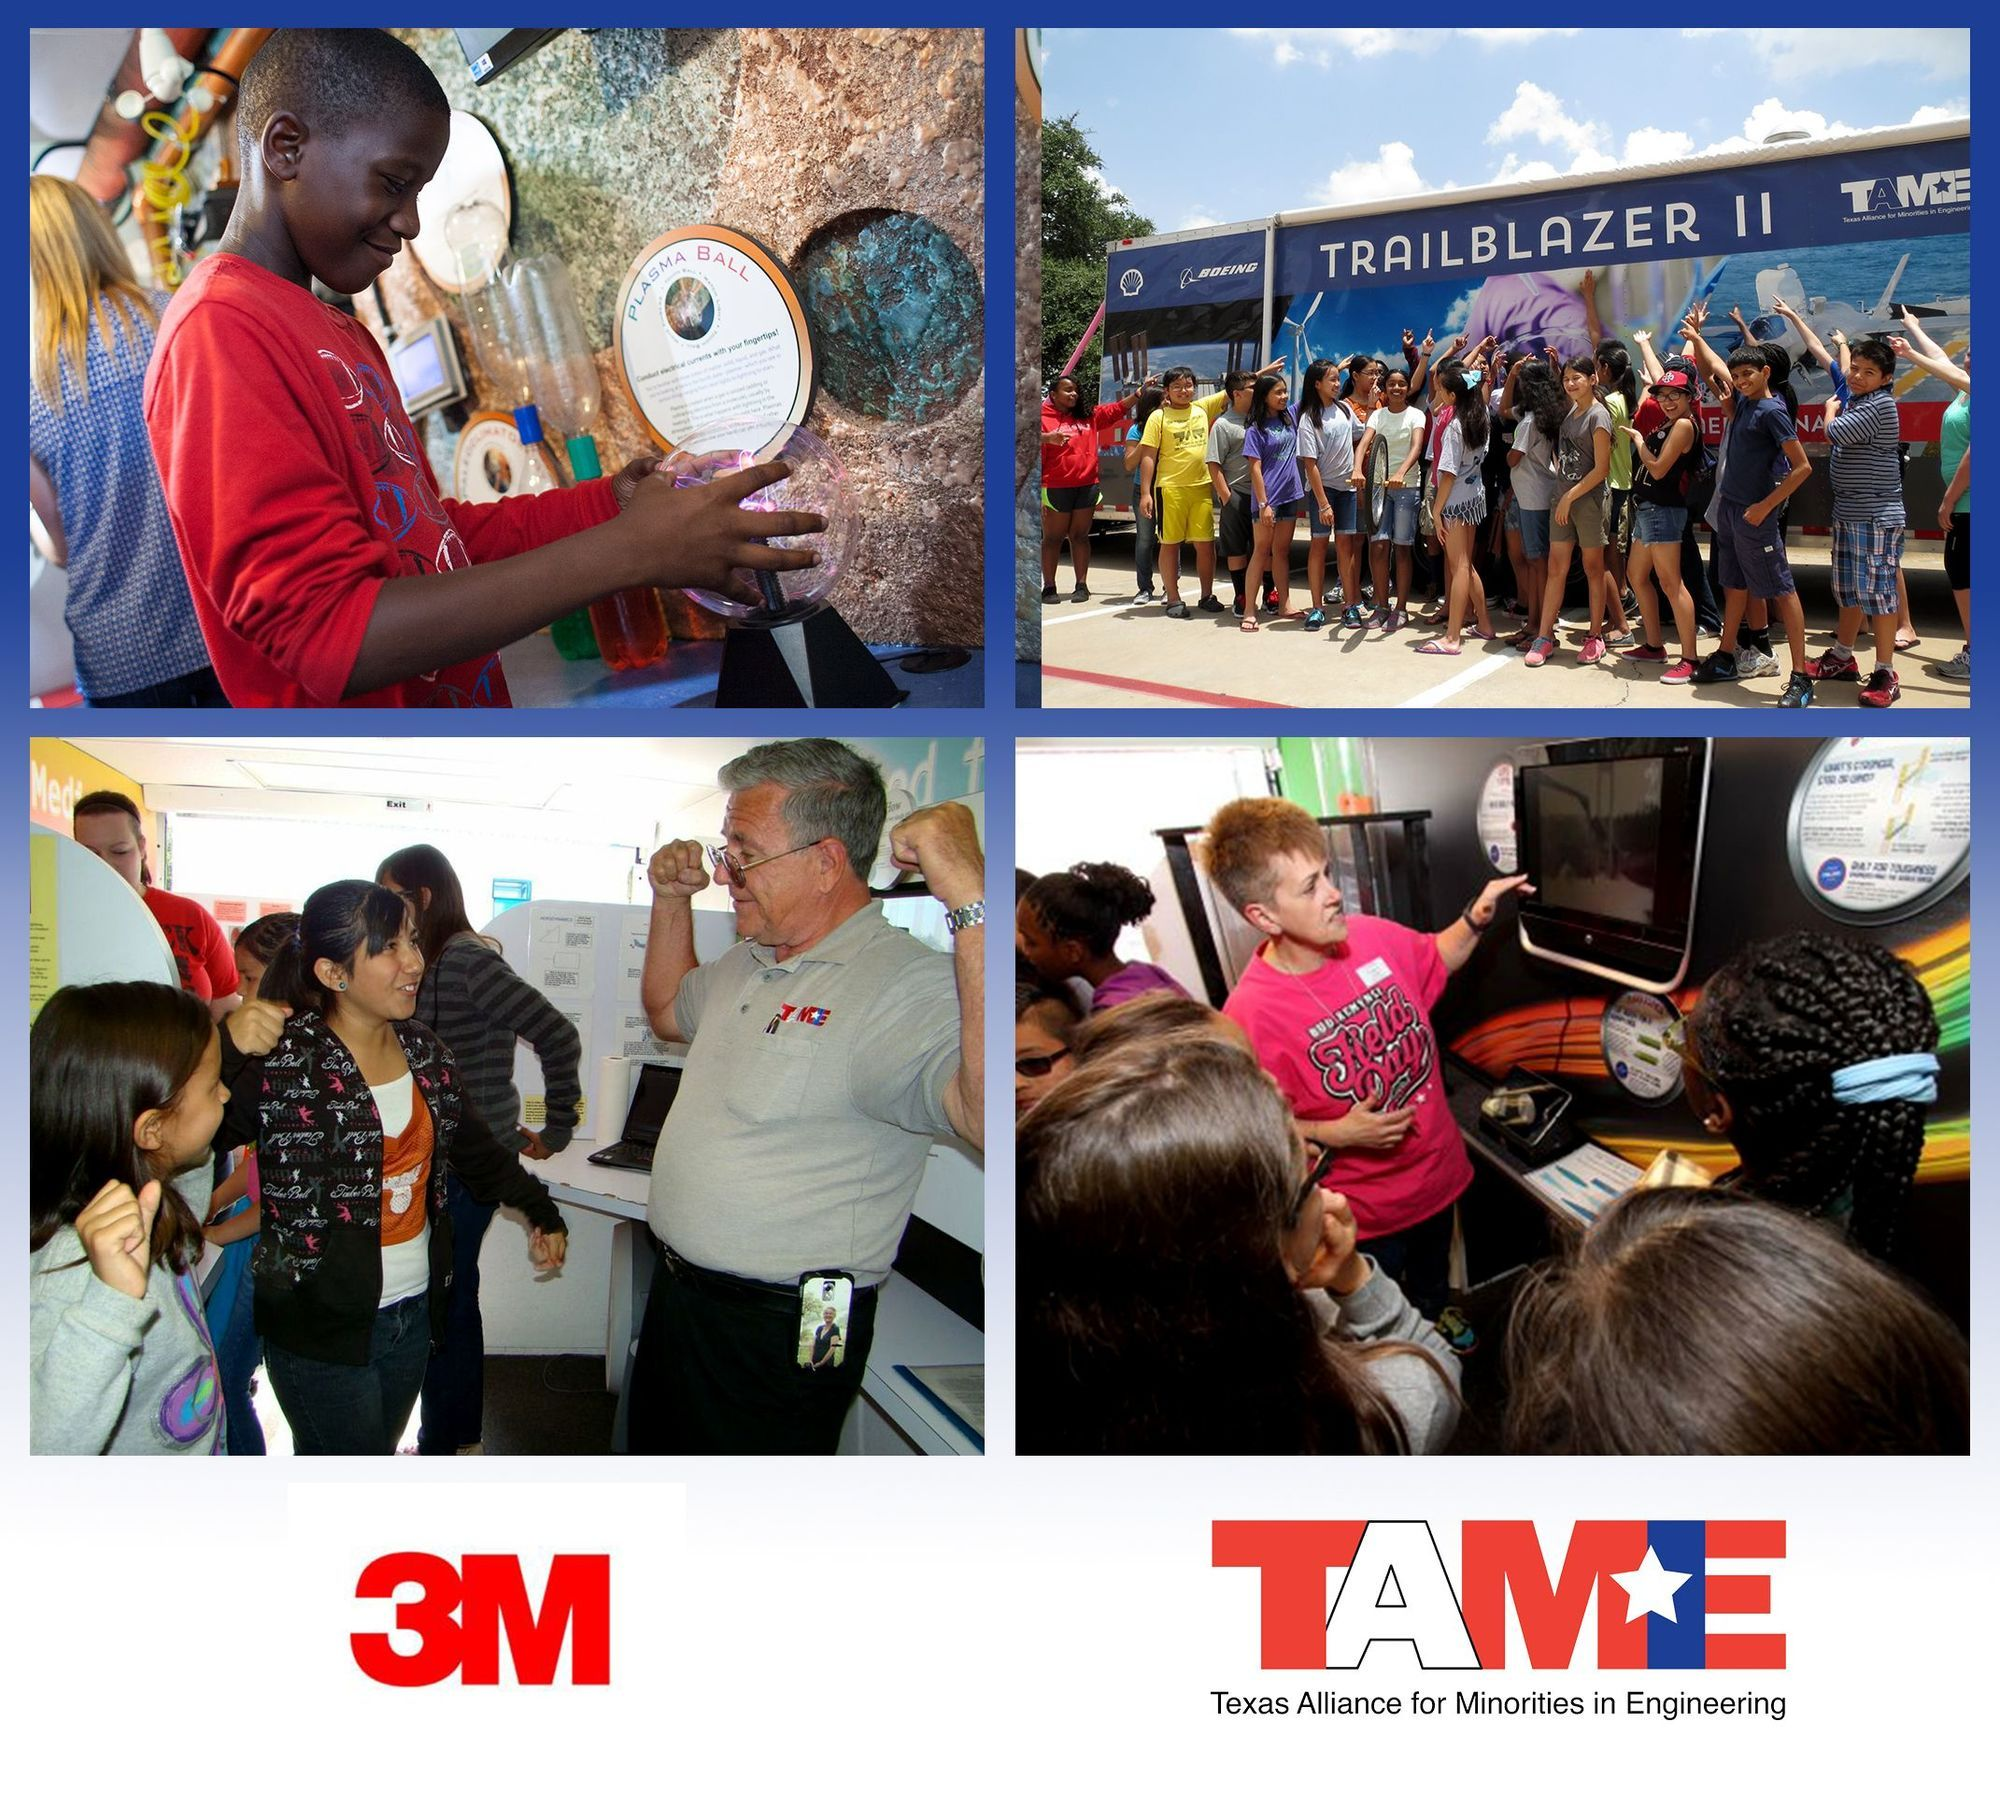 3M Awards $15,000 to TAME for Trailblazer Visits to Central Texas